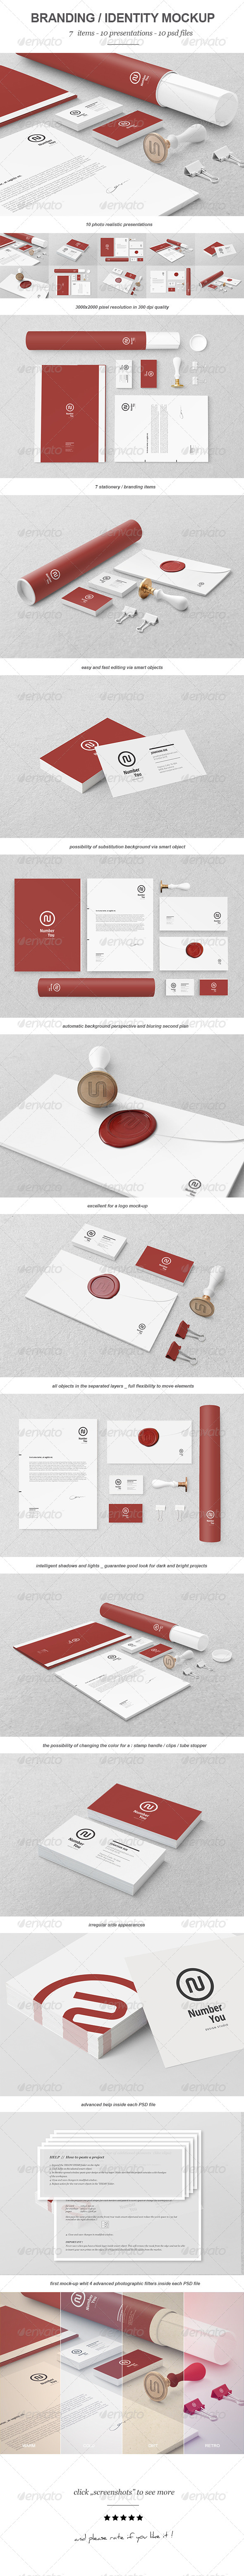 Branding / Identity Mock-up 3 - Print Product Mock-Ups